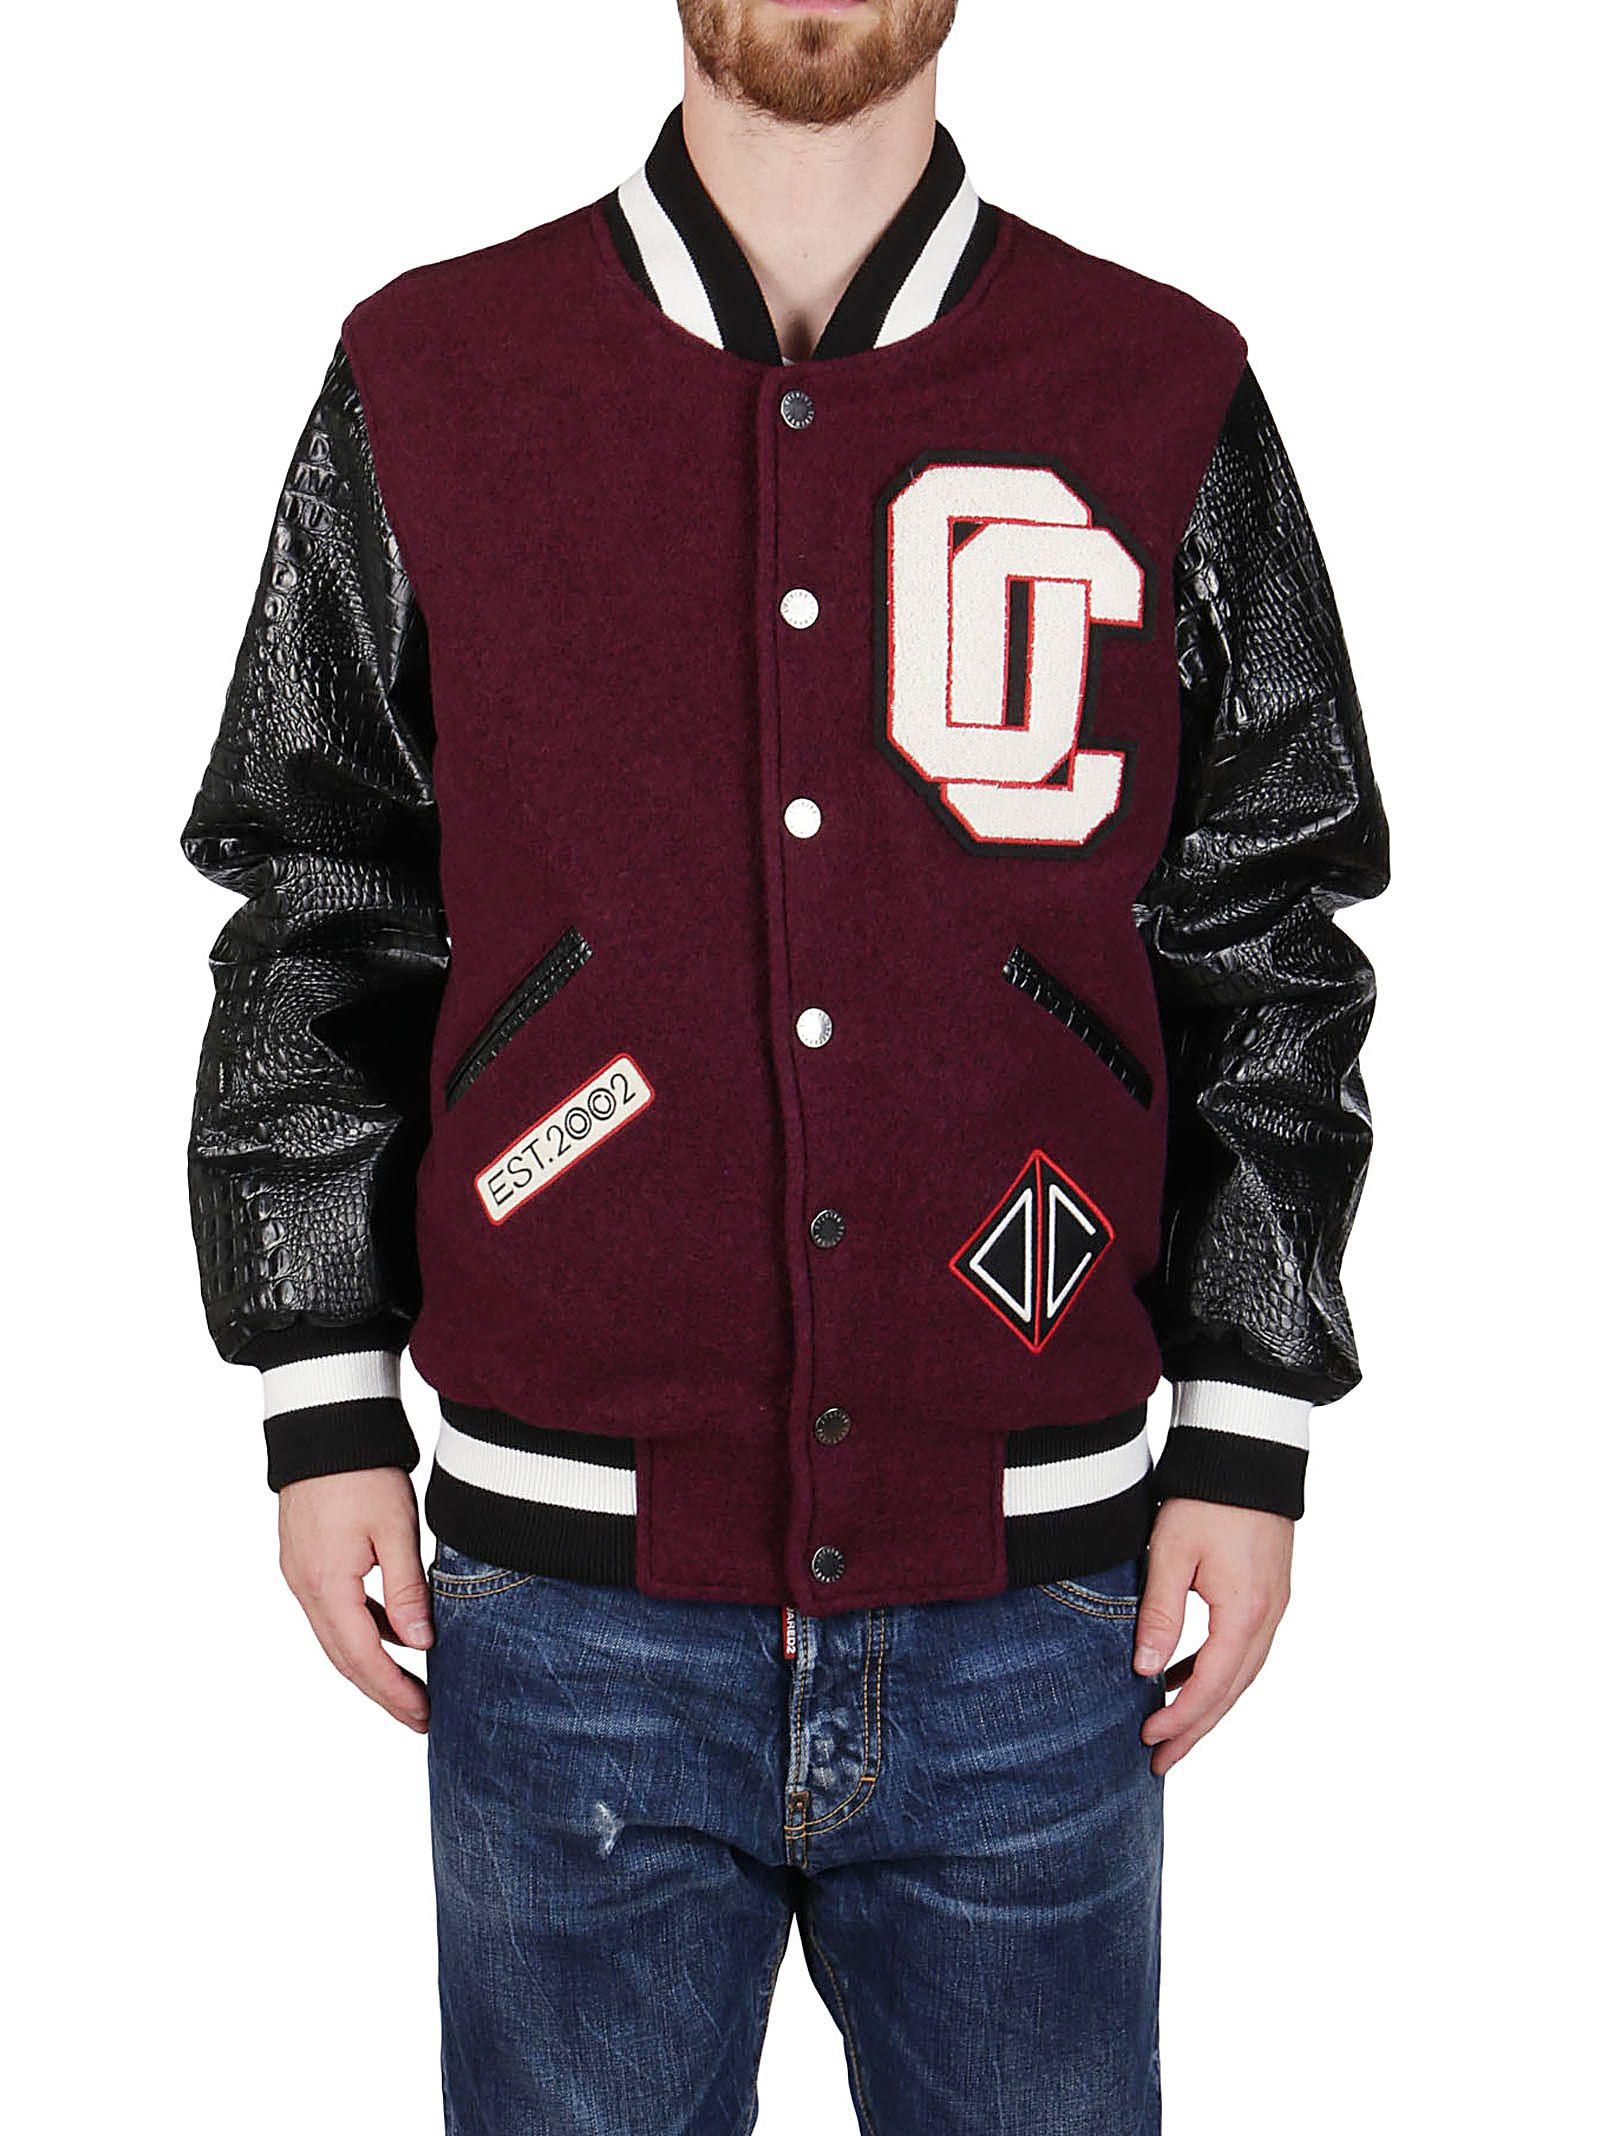 Opening Ceremony OPENING CEREMONY MEN'S BURGUNDY OUTERWEAR JACKET